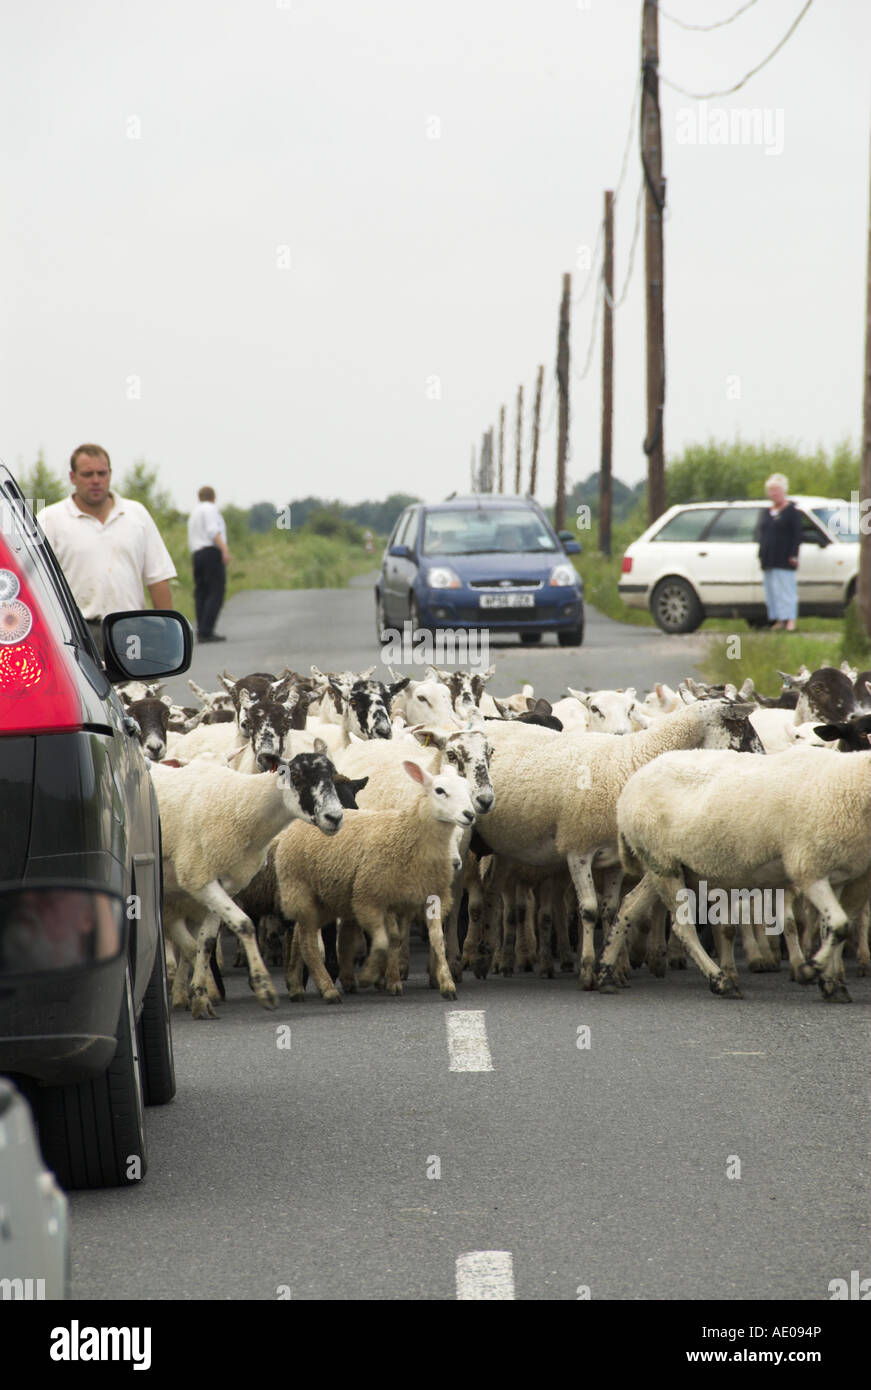 Sheep on road being moved to new grazing area, Norfolk, UK, August - Stock Image